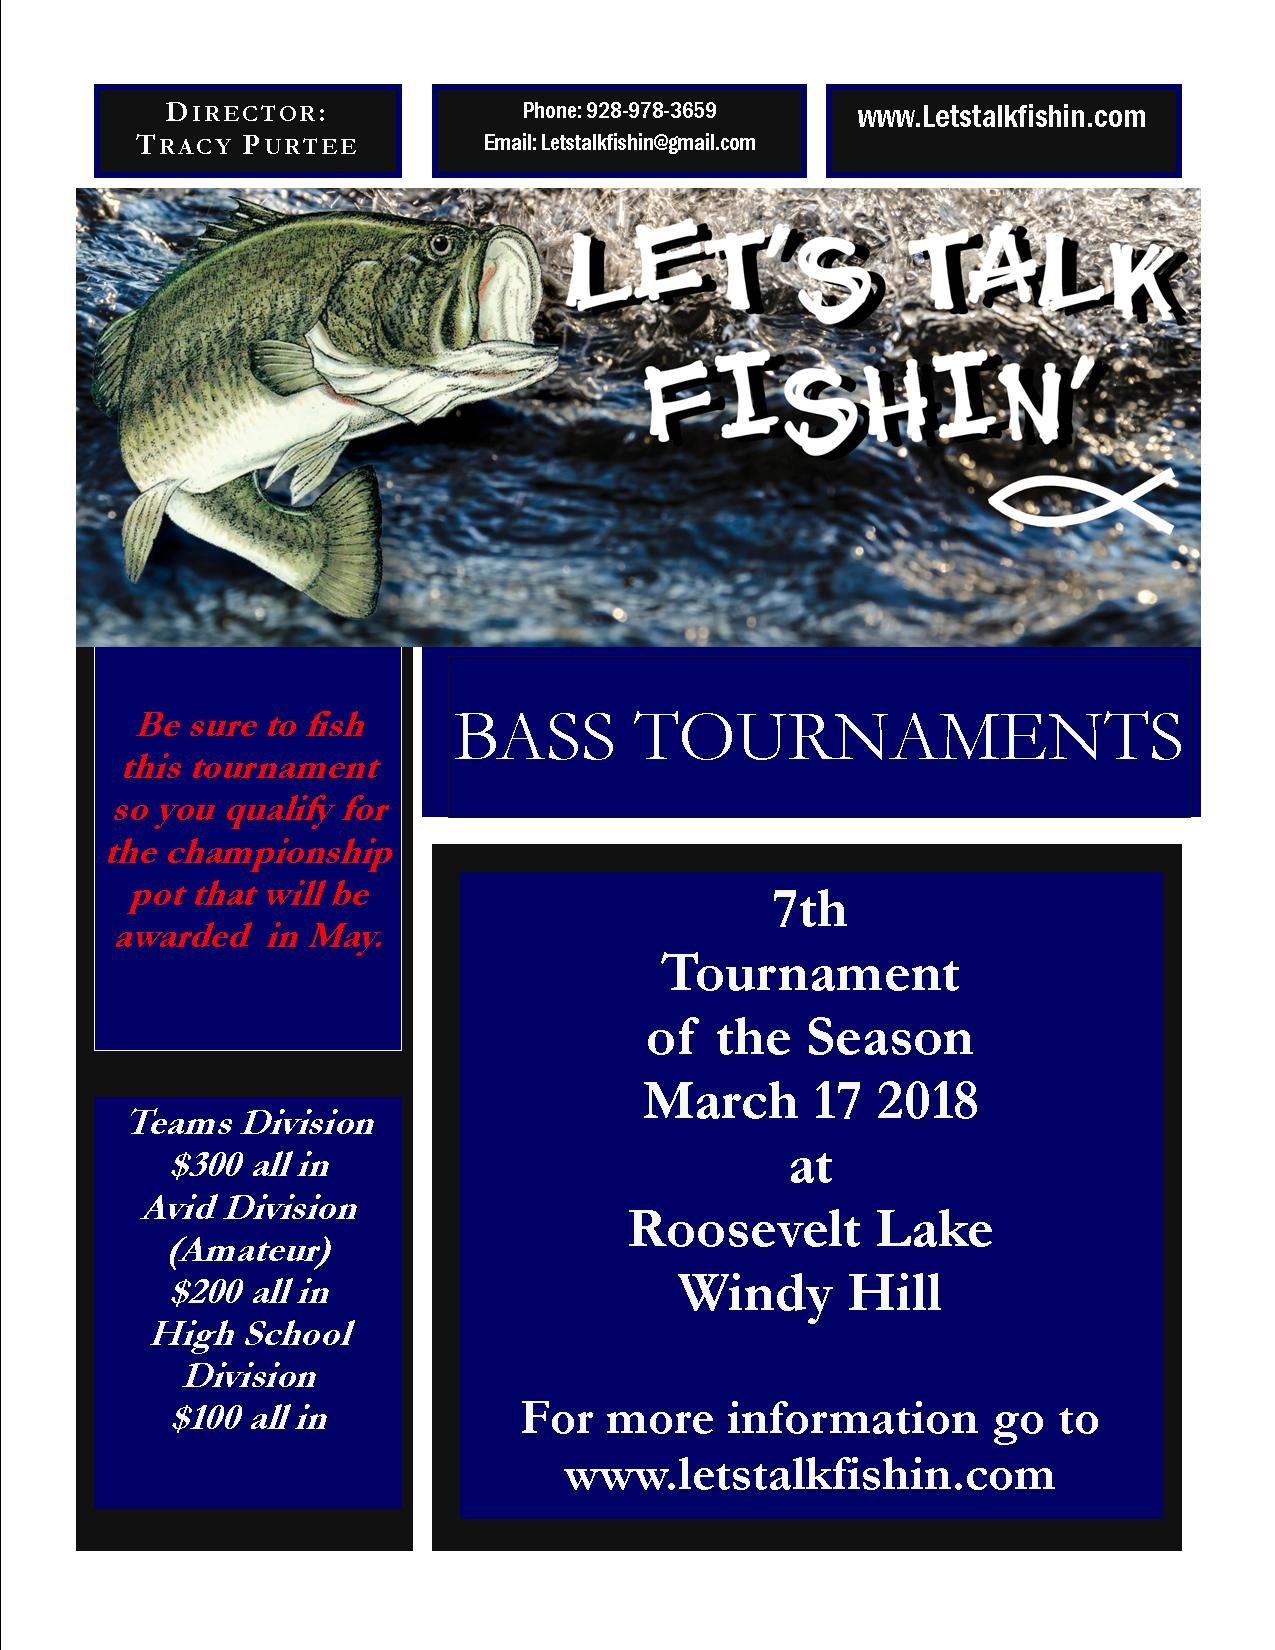 Click image for larger version  Name:7th Tournament.jpg Views:1645 Size:283.6 KB ID:96826